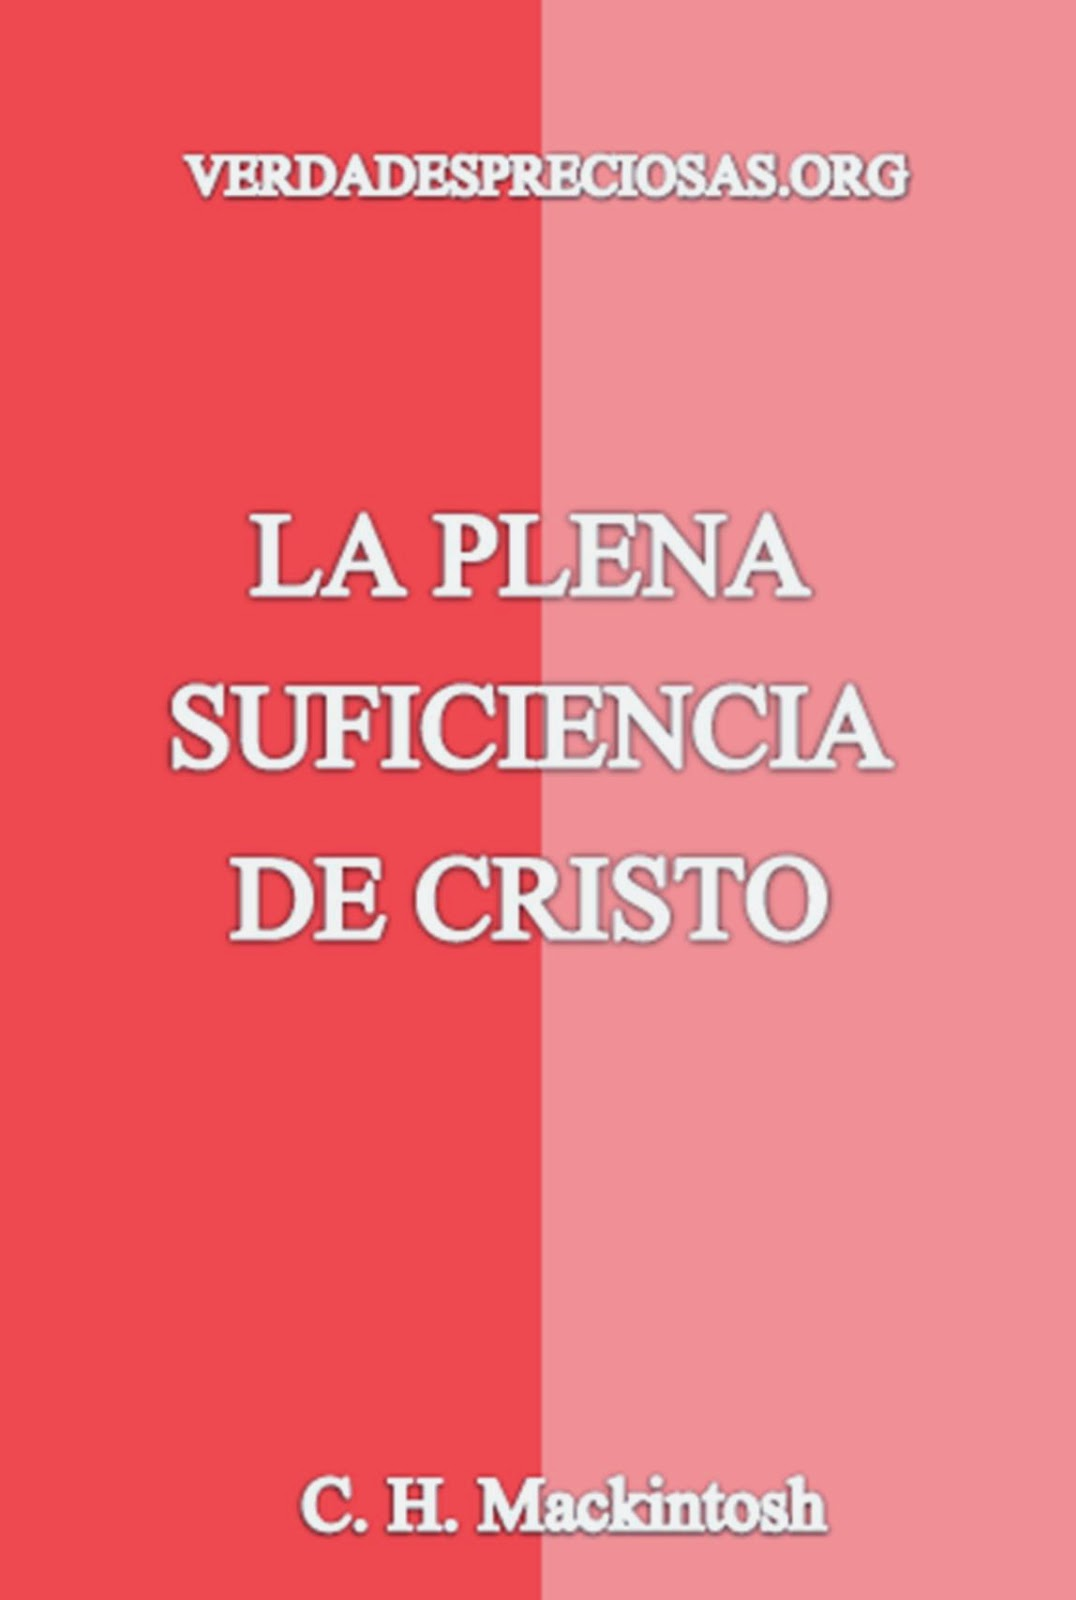 C. H. Mackintosh-La Plena Suficiencia De Cristo-